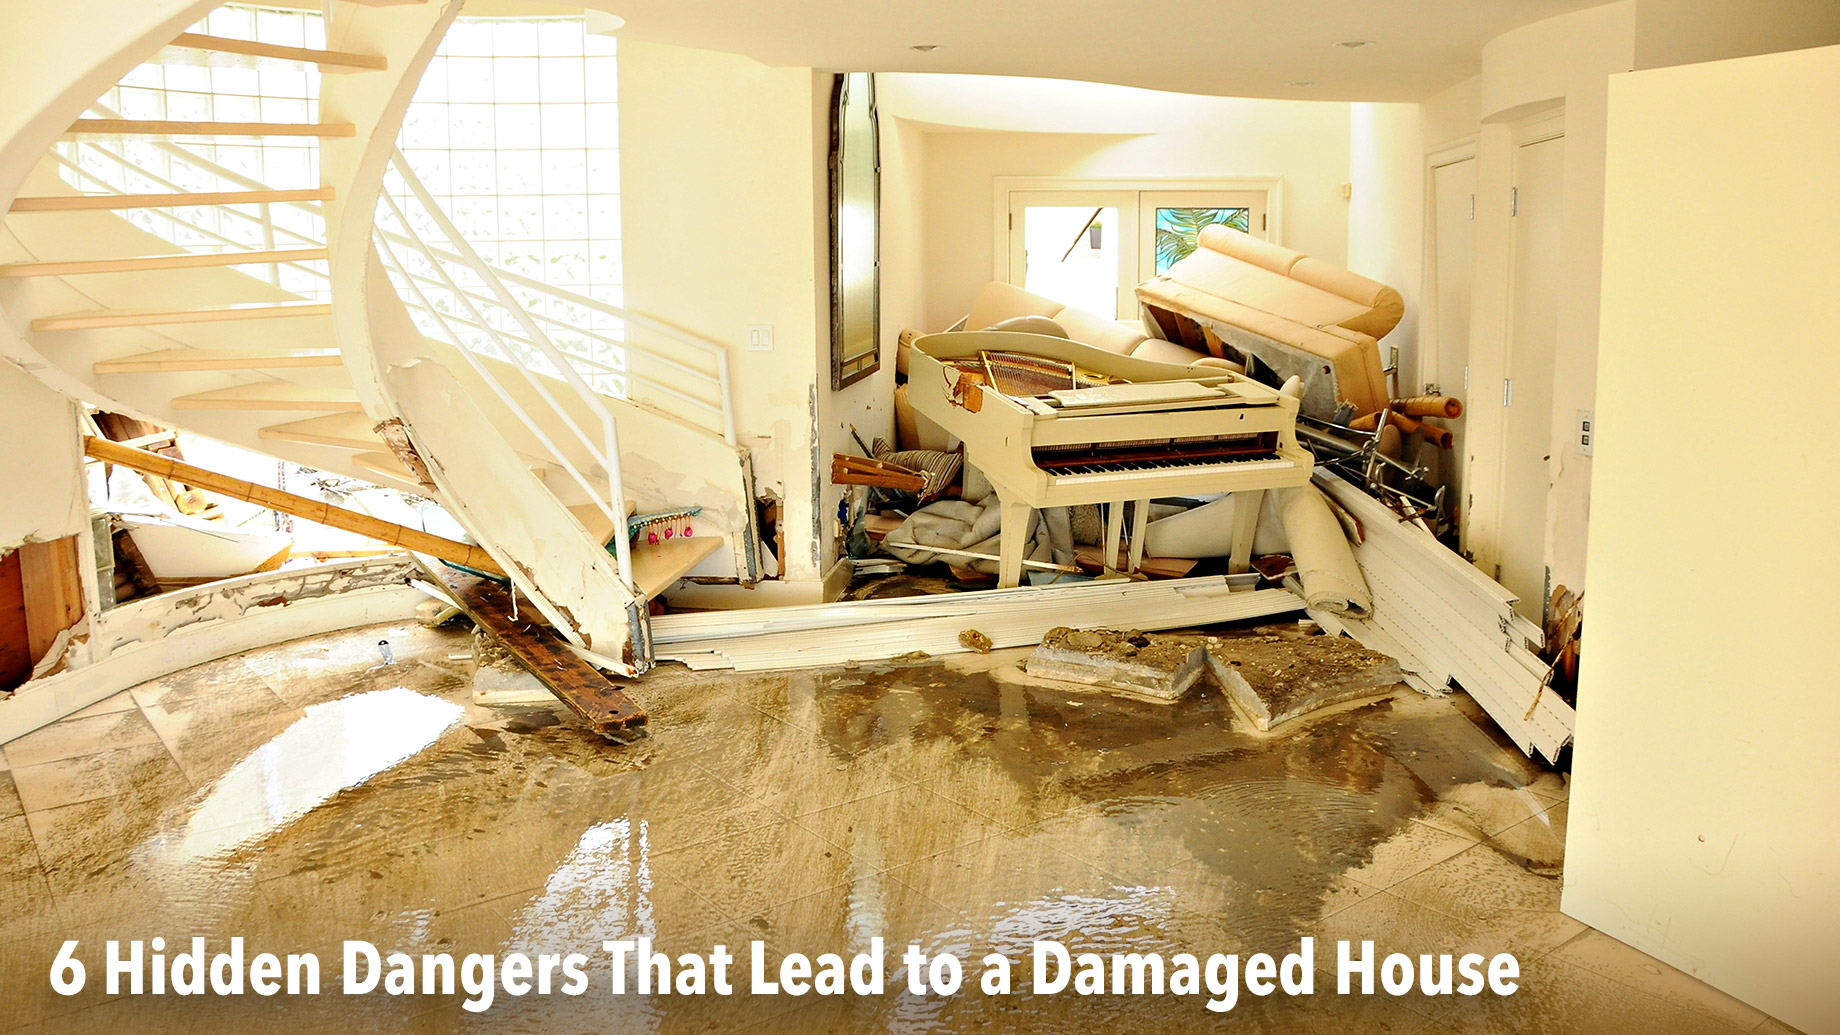 Hazardous Homes - 6 Hidden Dangers That Lead to a Damaged House